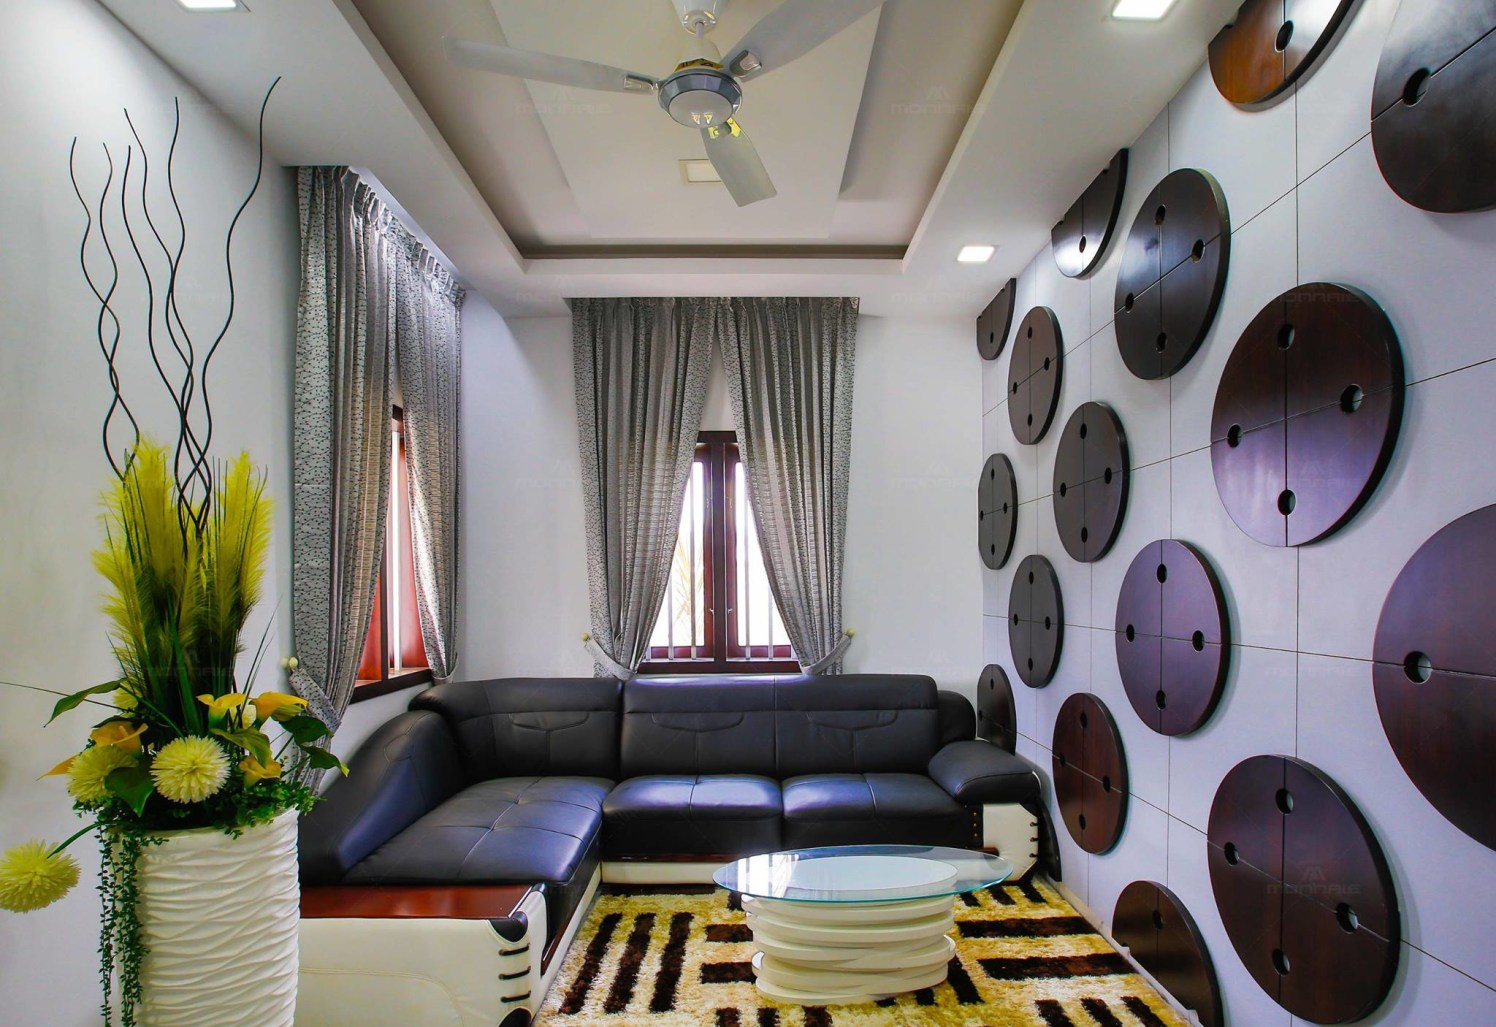 Compact Living Room with Black L Shaped Sitting Space and Circular Wall Art by Monnaie Architects Living-room Modern | Interior Design Photos & Ideas